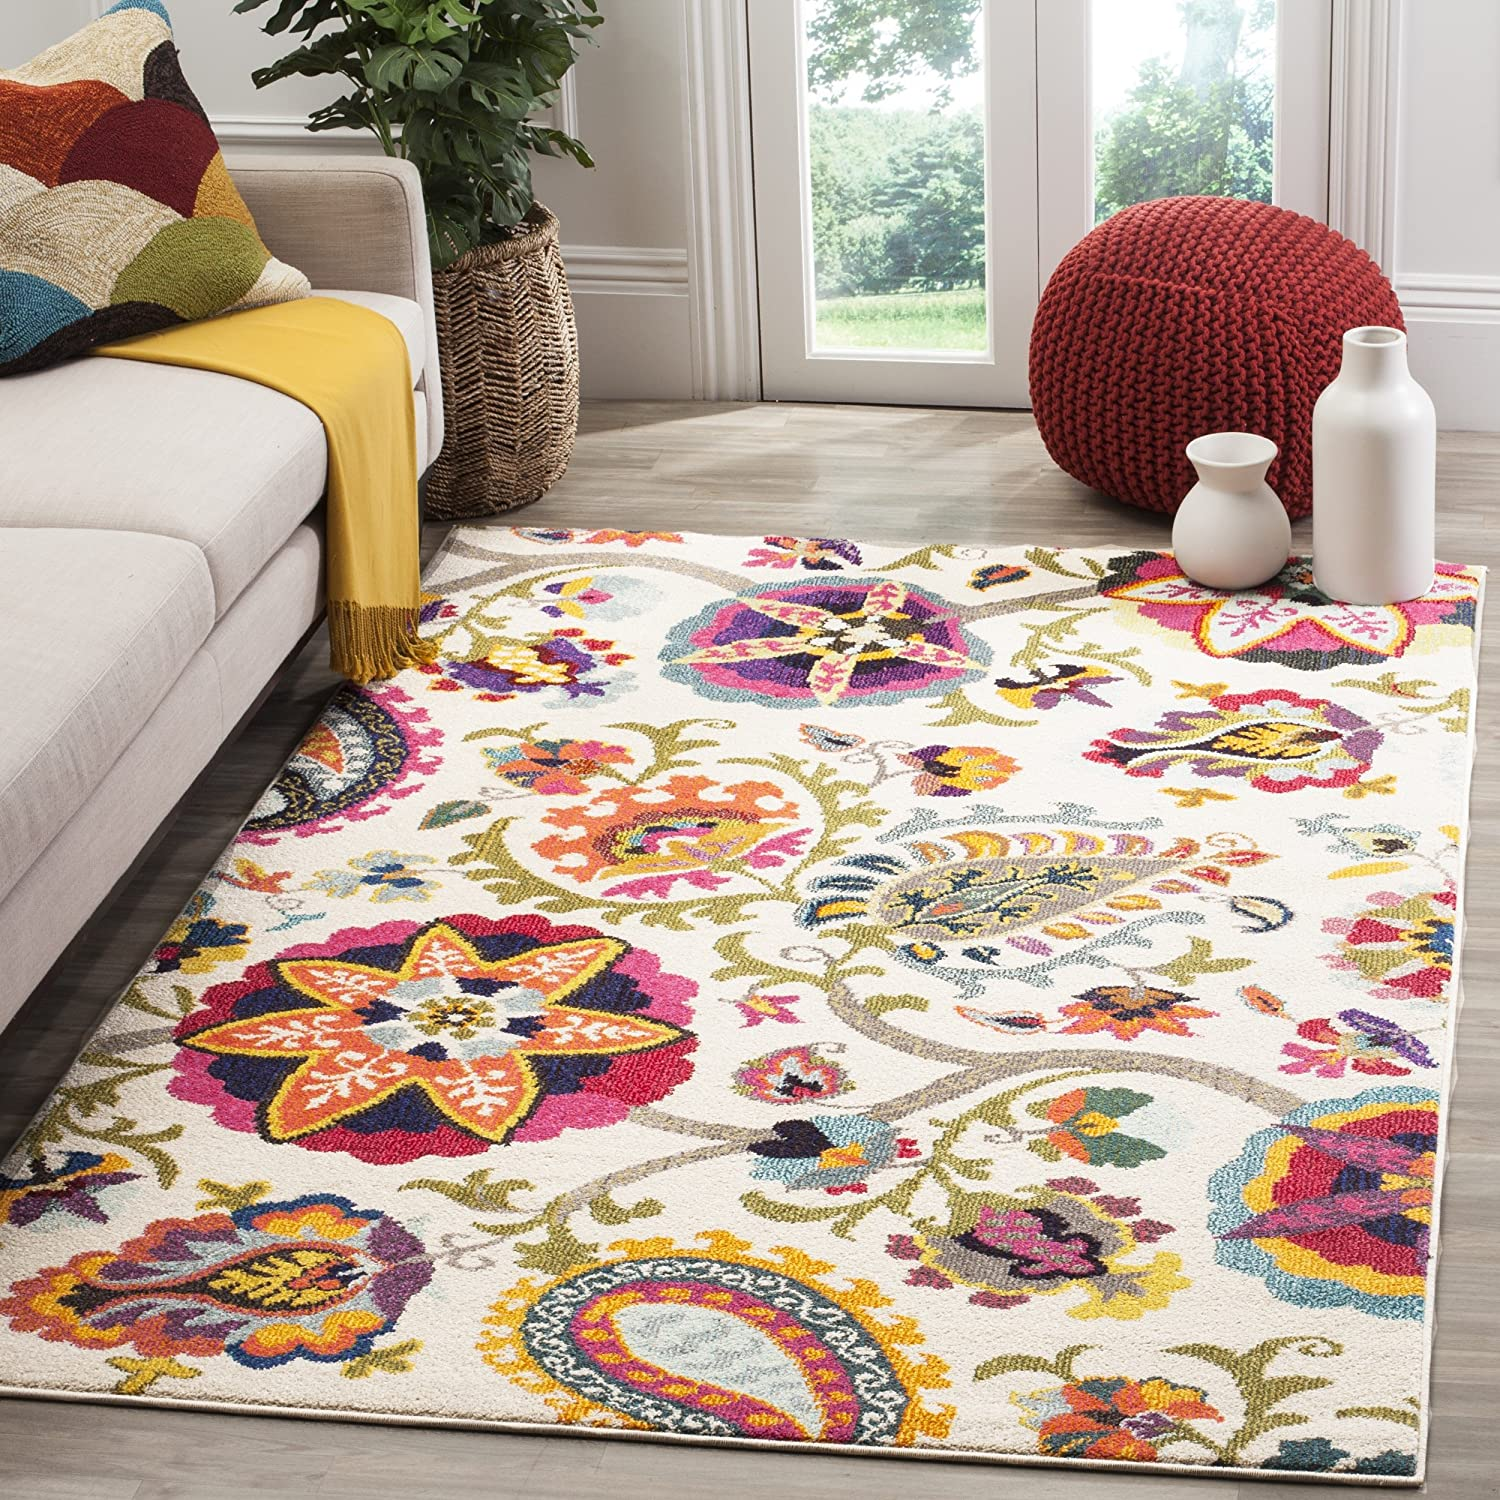 tapis design multicolore pas cher